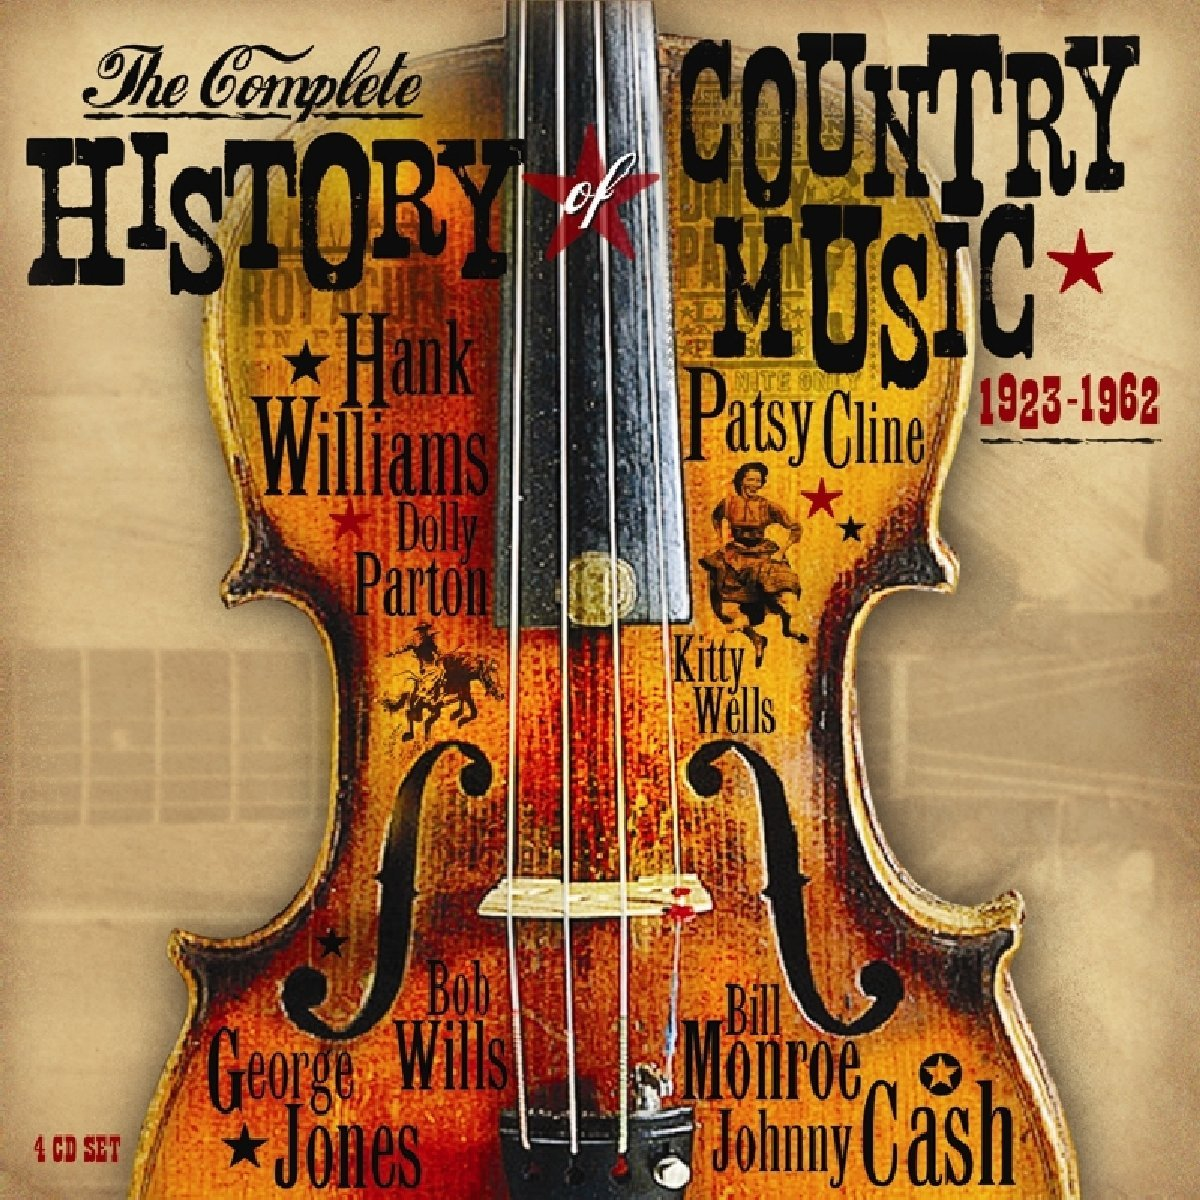 """history of country music On august 21, 1938, kenneth ray """"kenny"""" rogers was born in houston, texas  he arrived at a fortuitous time in the history of country music."""